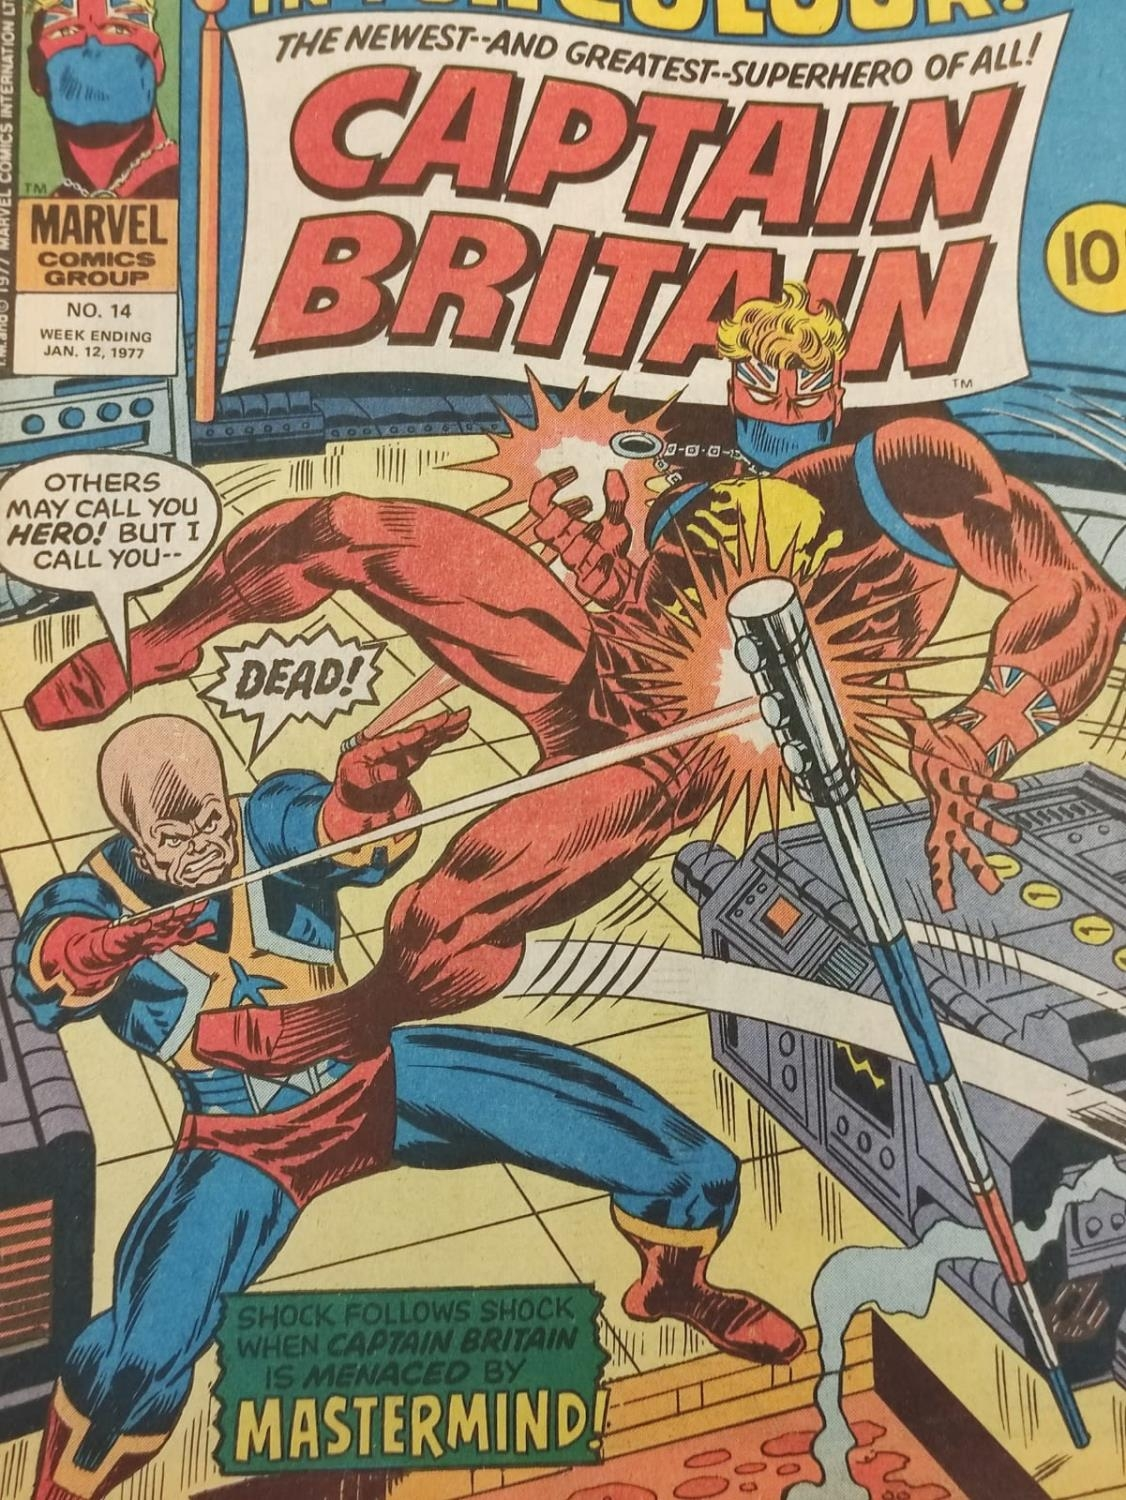 20 editions of mixed Vintage Marvel Comics. - Image 10 of 56